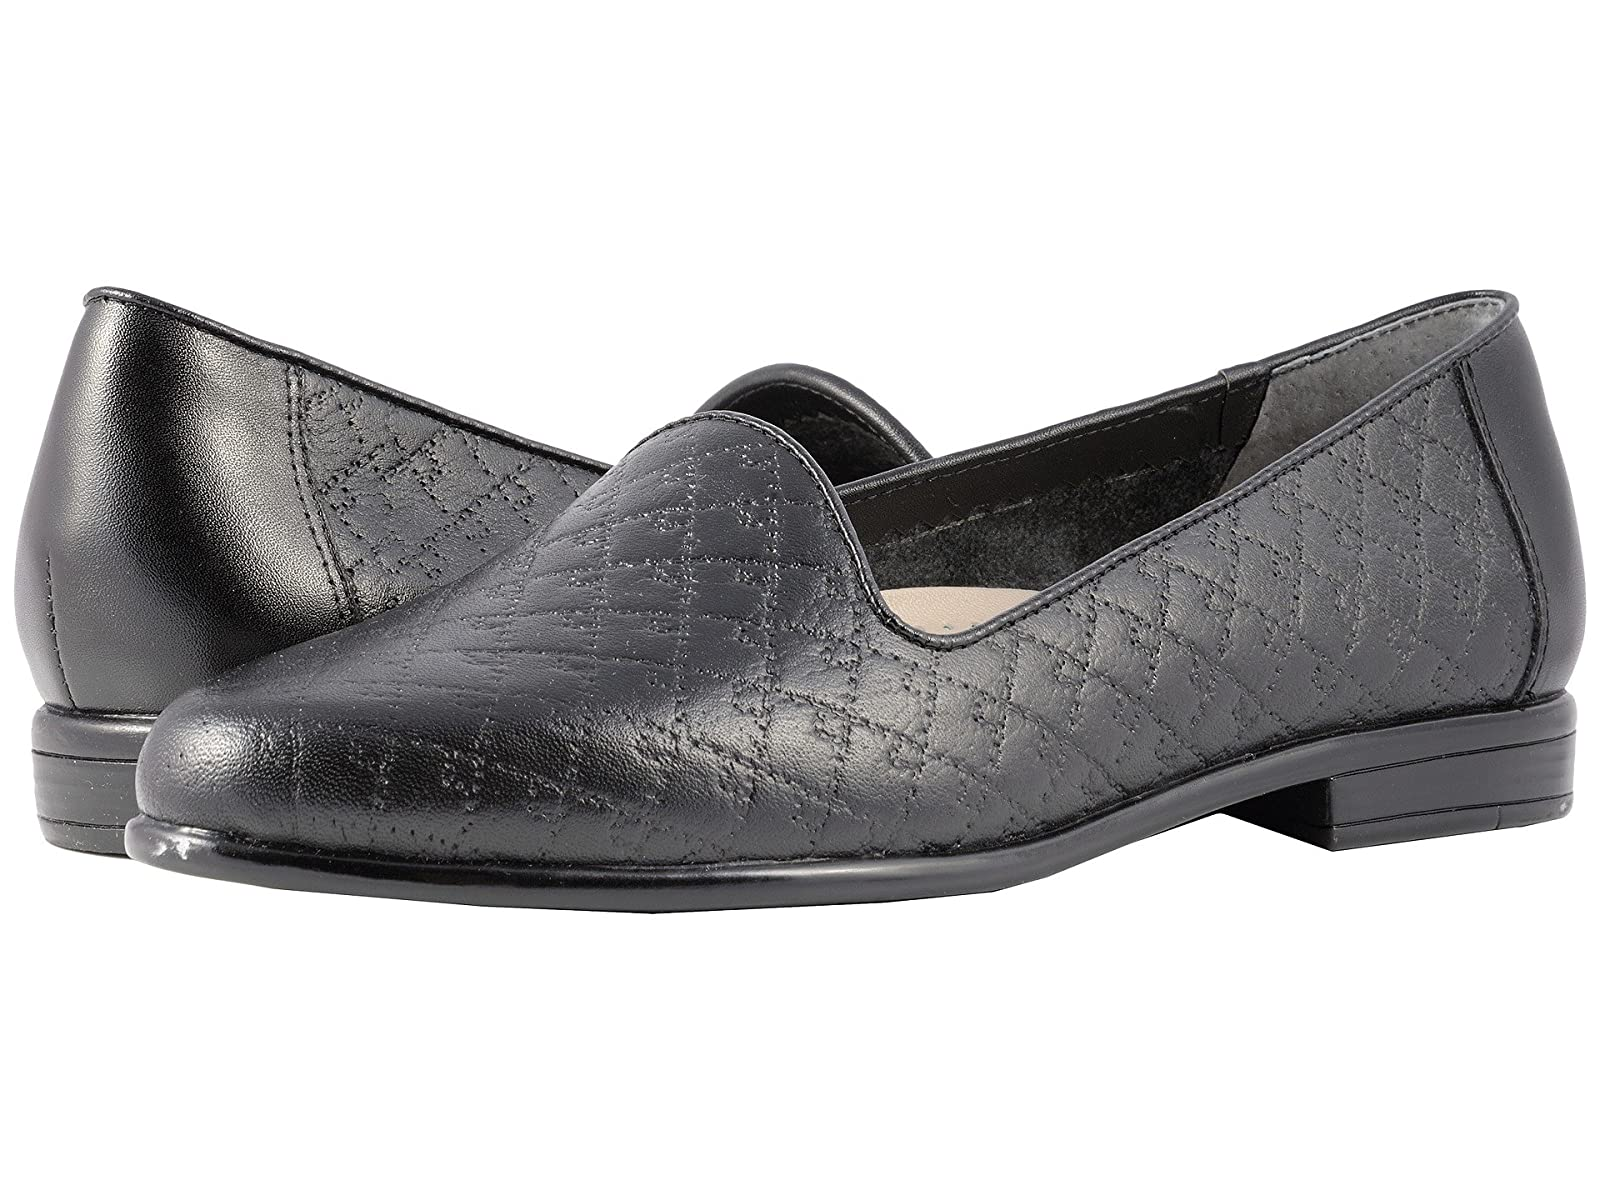 Man's/Woman's:Trotters Liz: With With Liz: a long reputation eaa88a